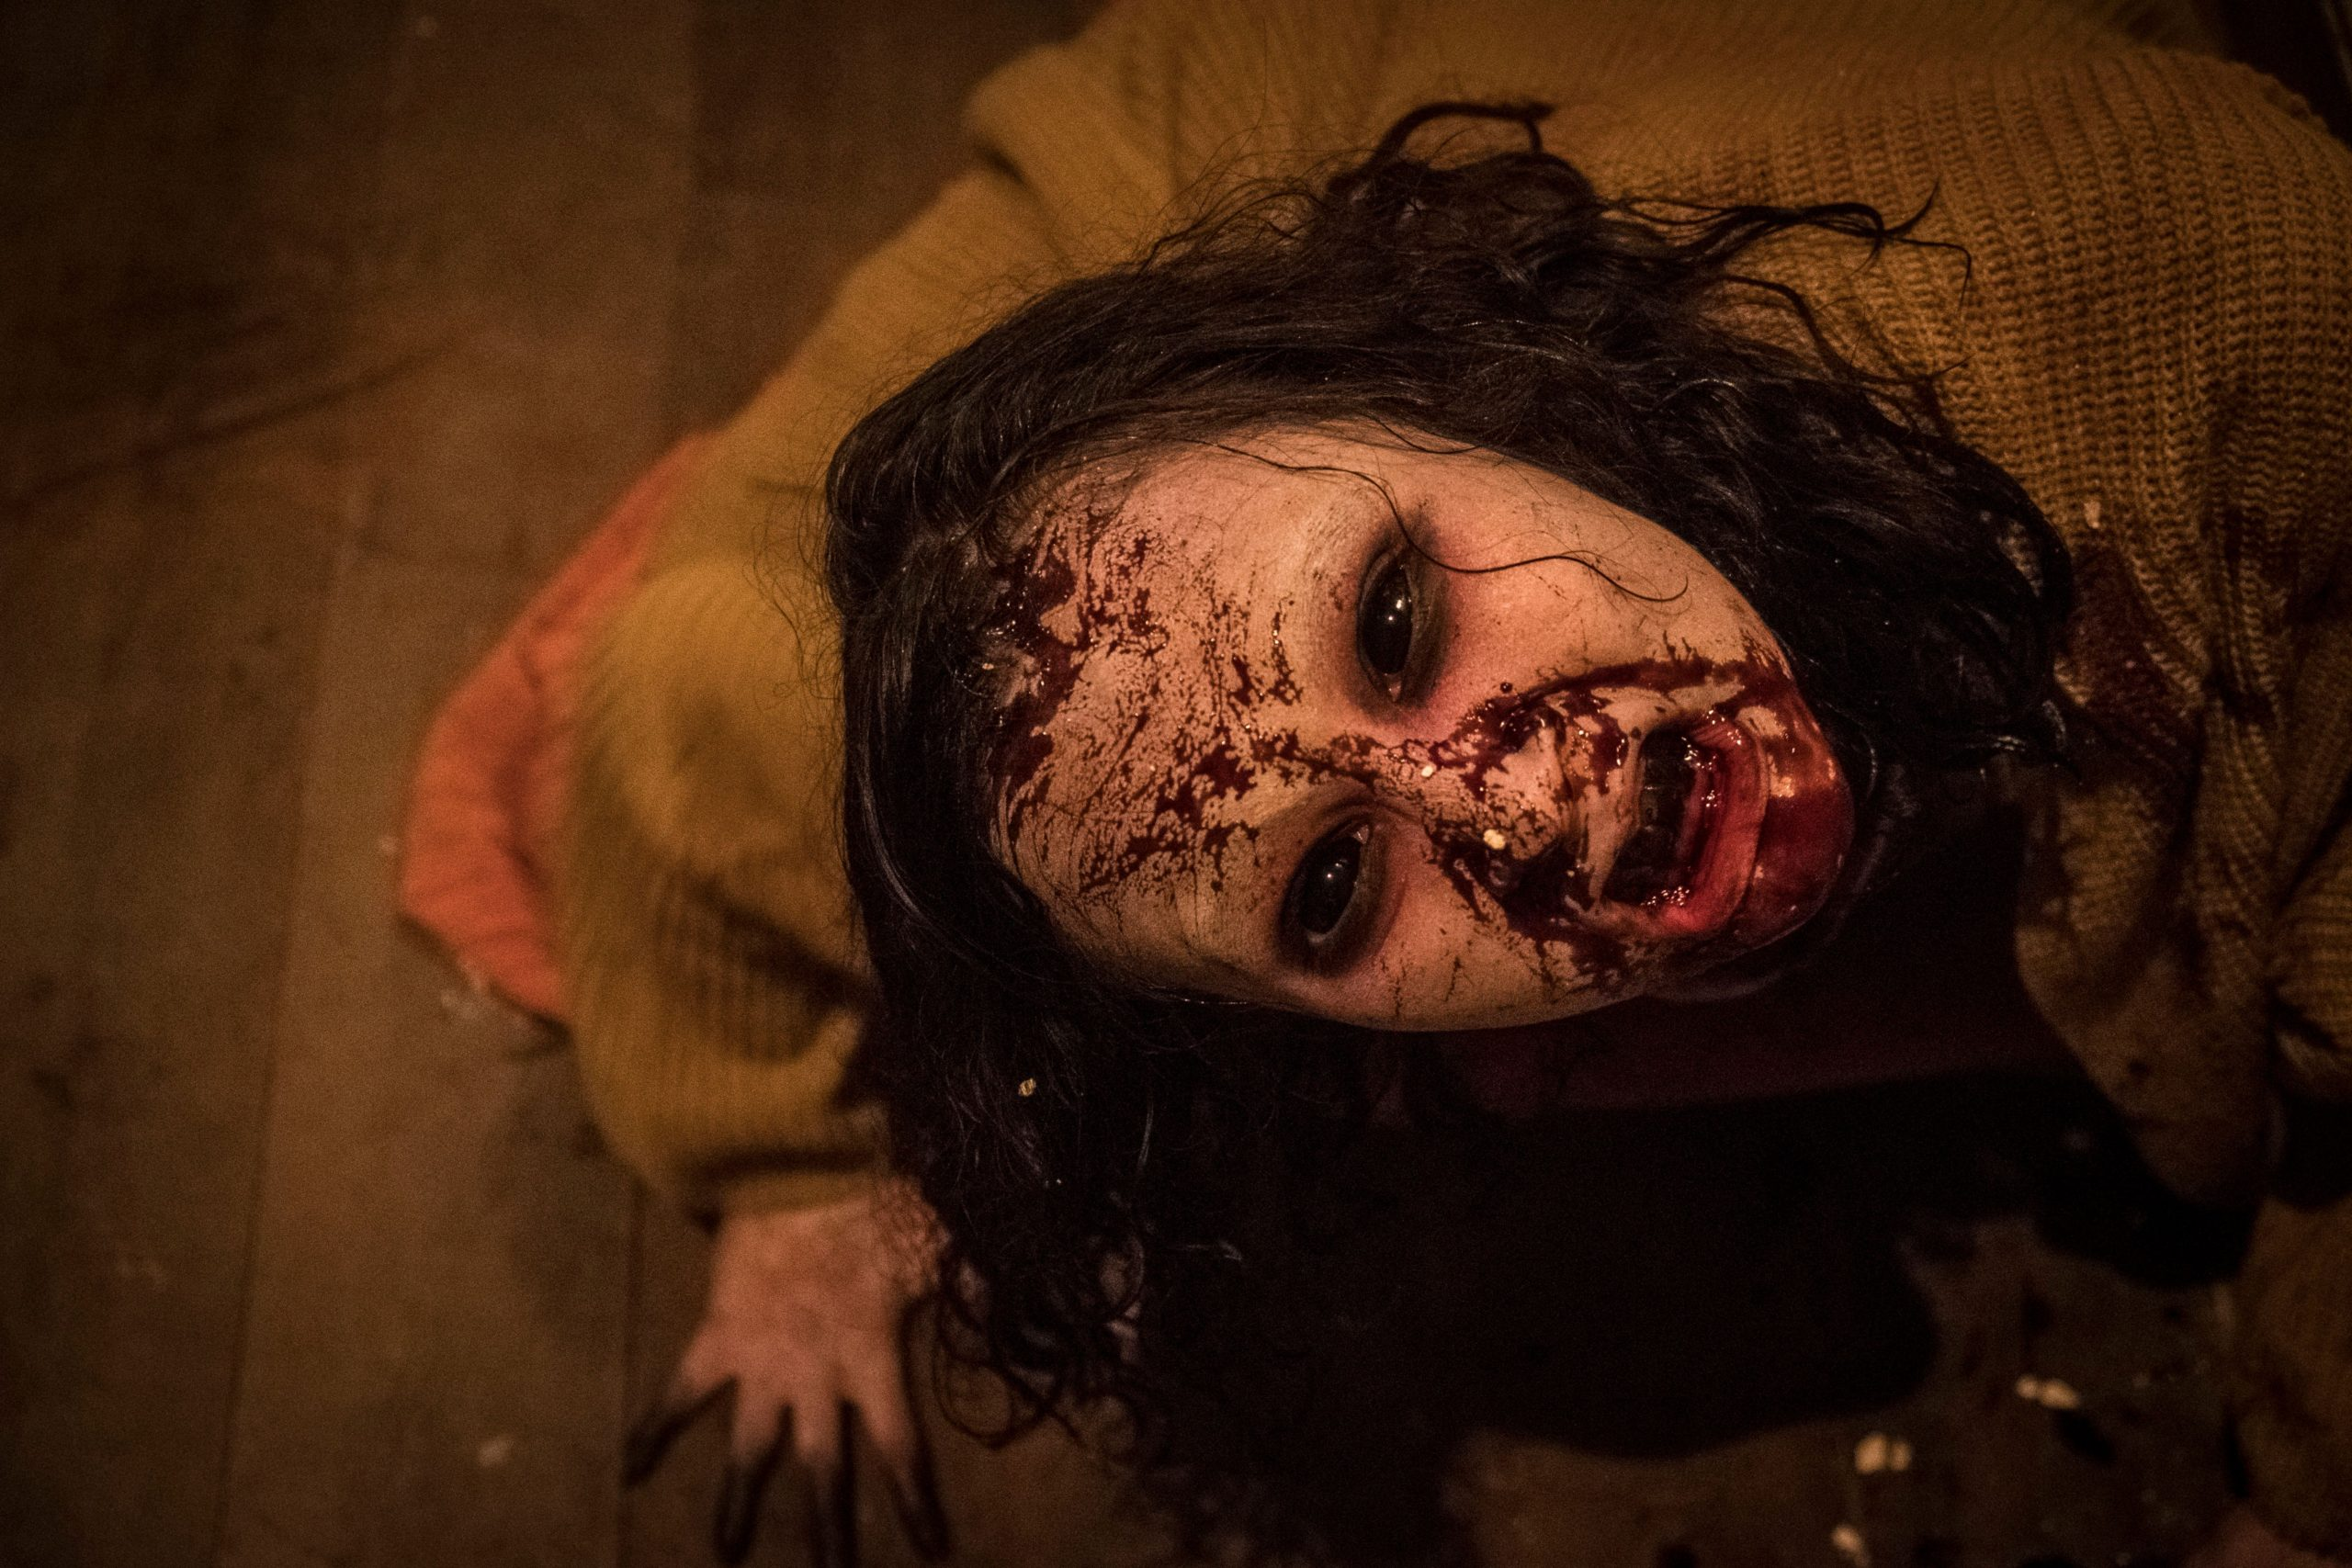 Halloween 2020 Clancy Brown Shudder Announces 61 Day Halloween Programming Block With Eight